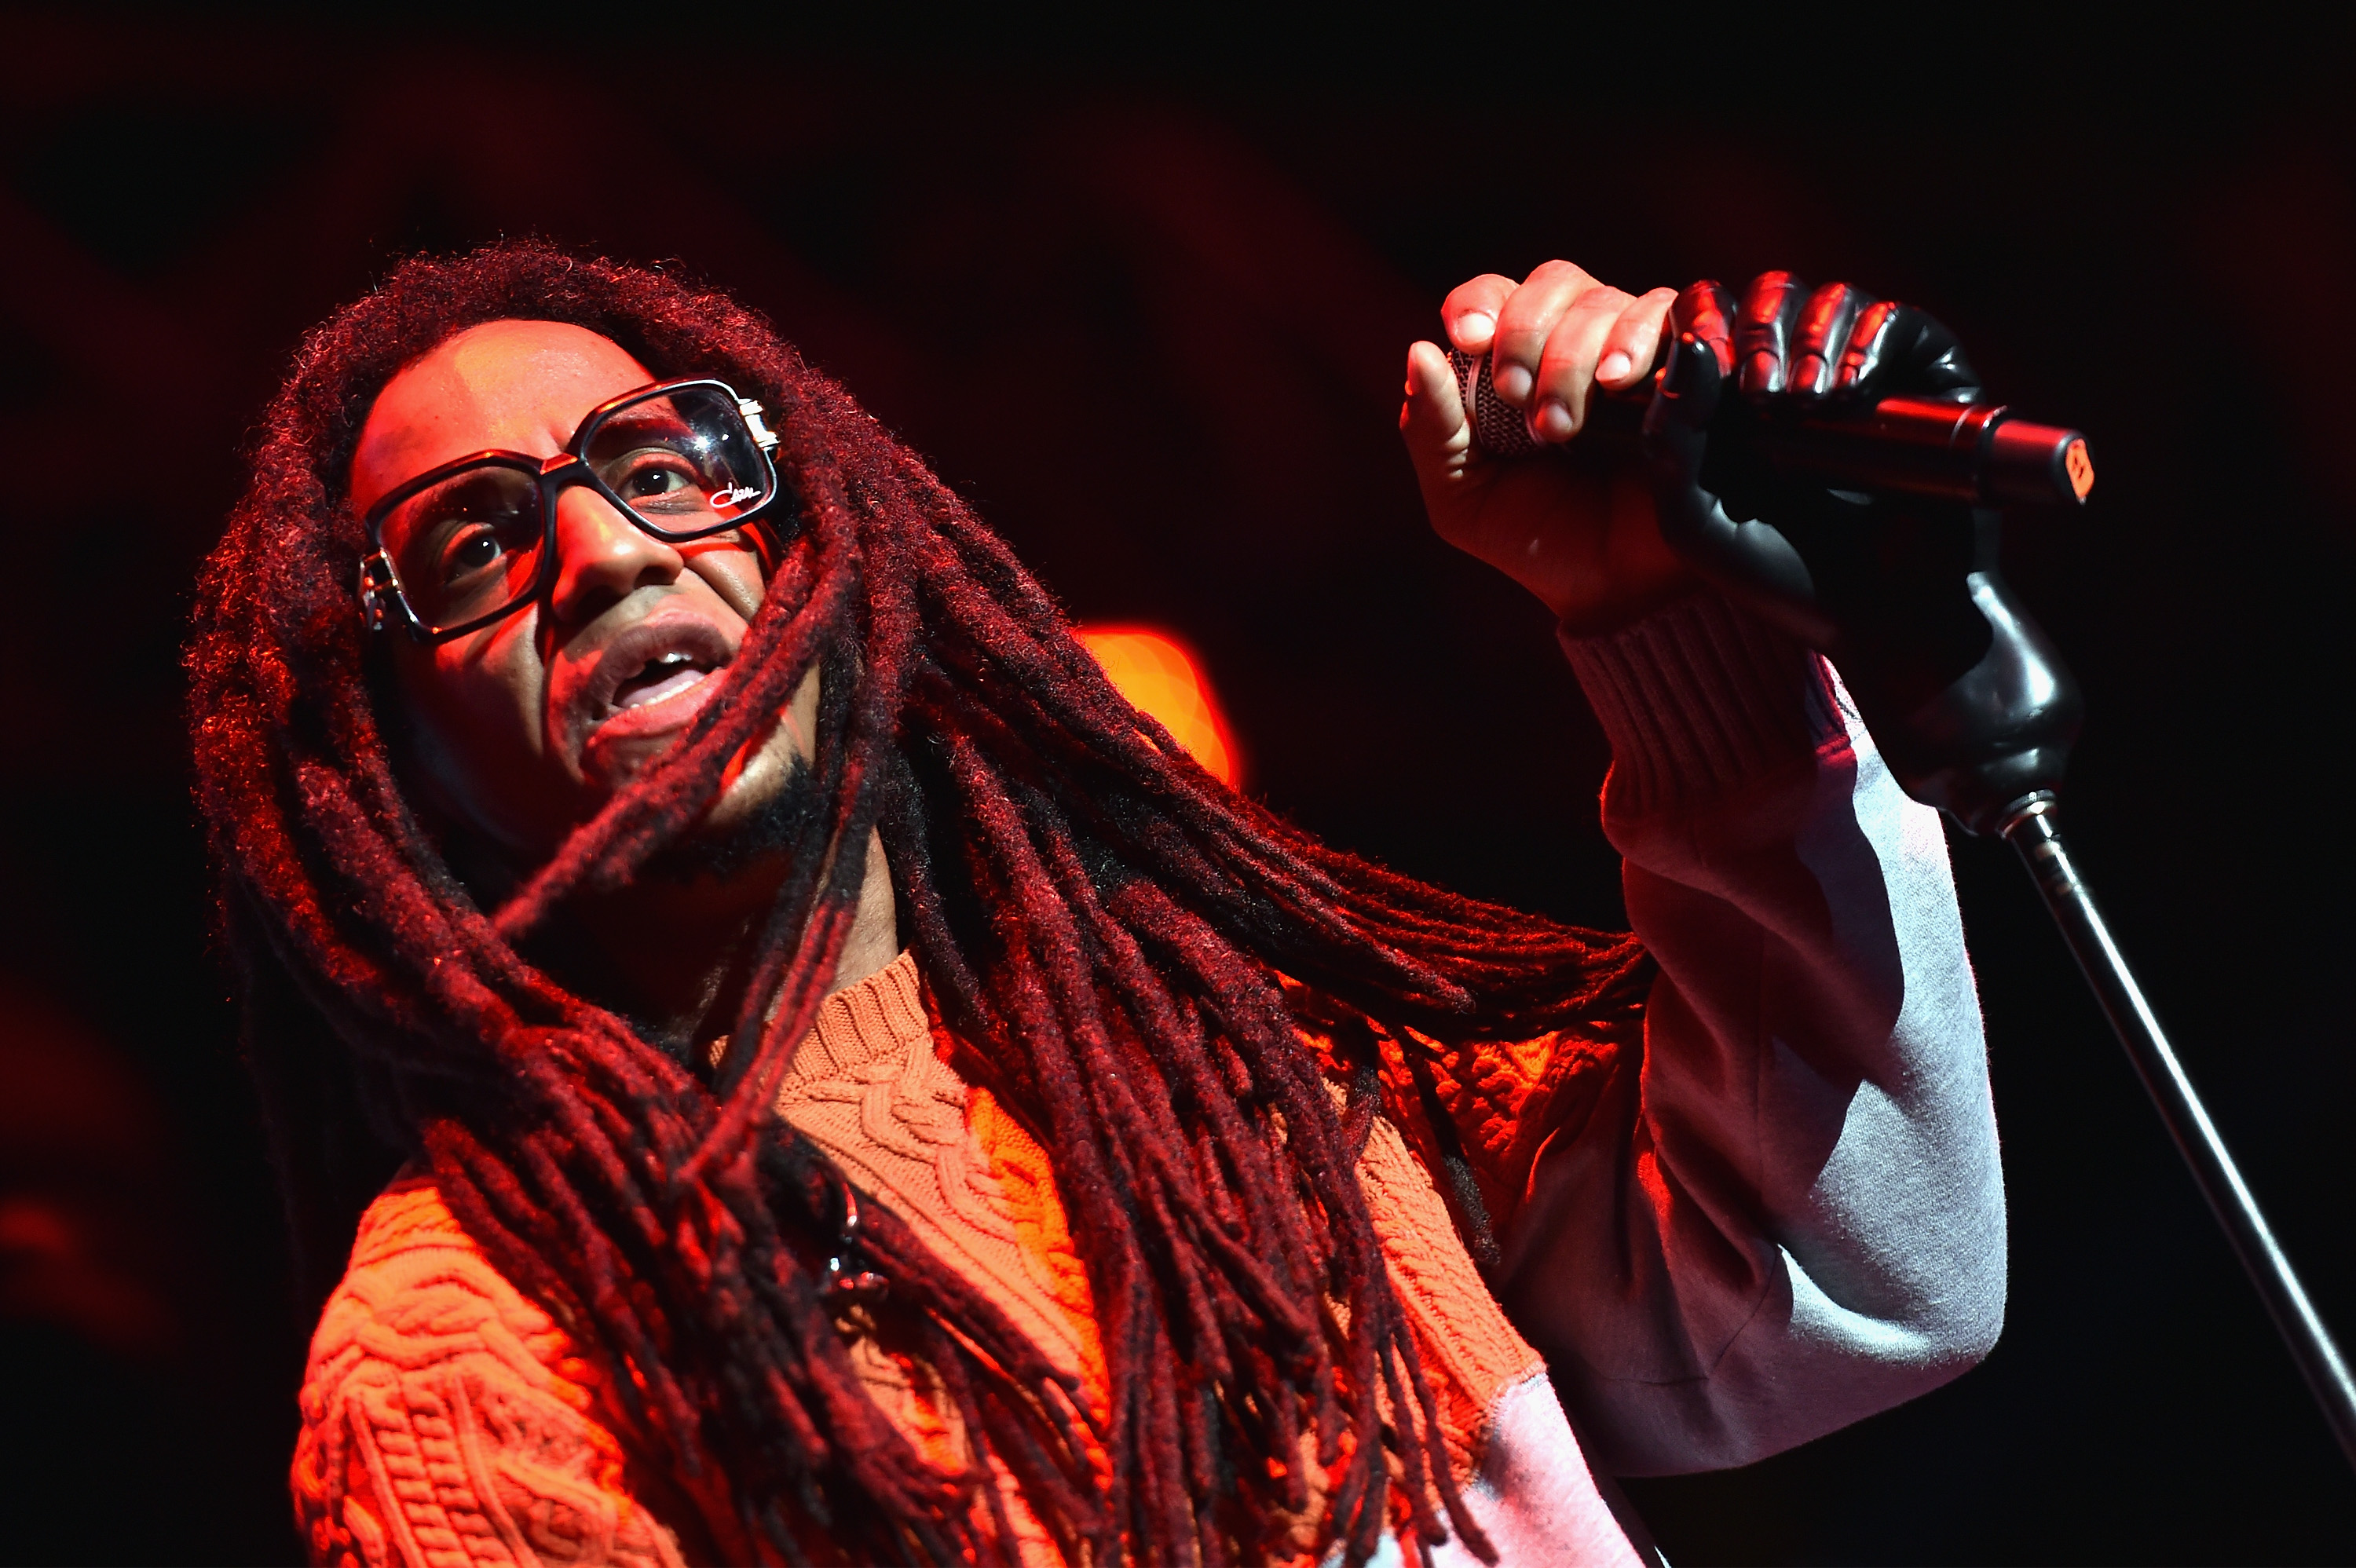 Tego Calderón Walked Out of His Own Concert in Houston & Insulted His Fans